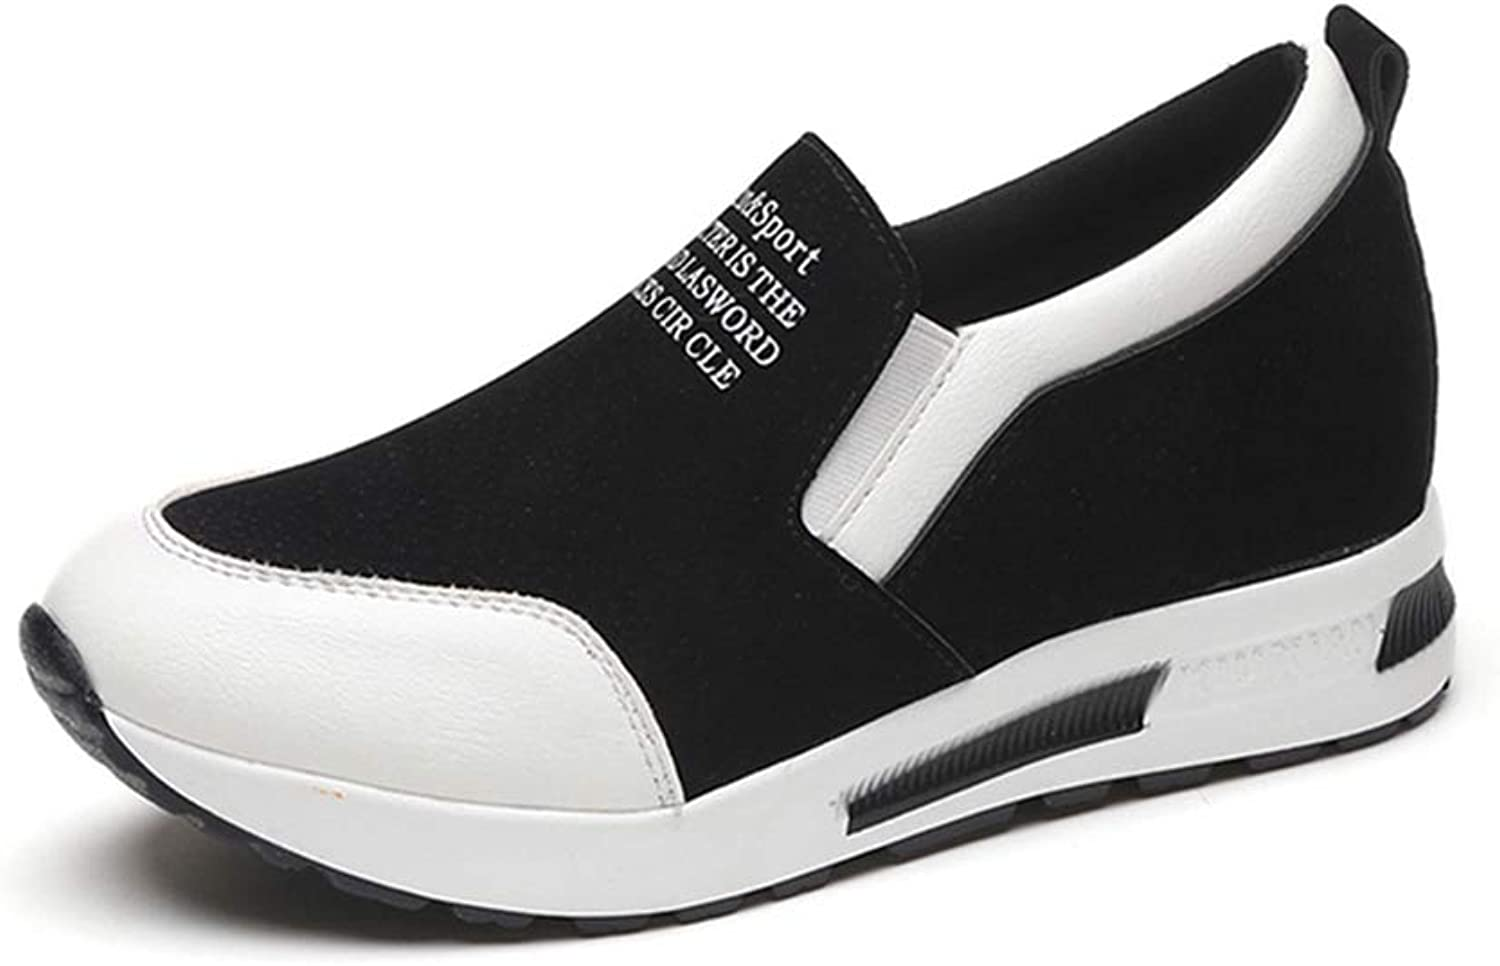 ASO-SLING Hidden Heel Women Casual shoes Vulcanized Slip on Platform Breathable Leather Fashion Sneakers